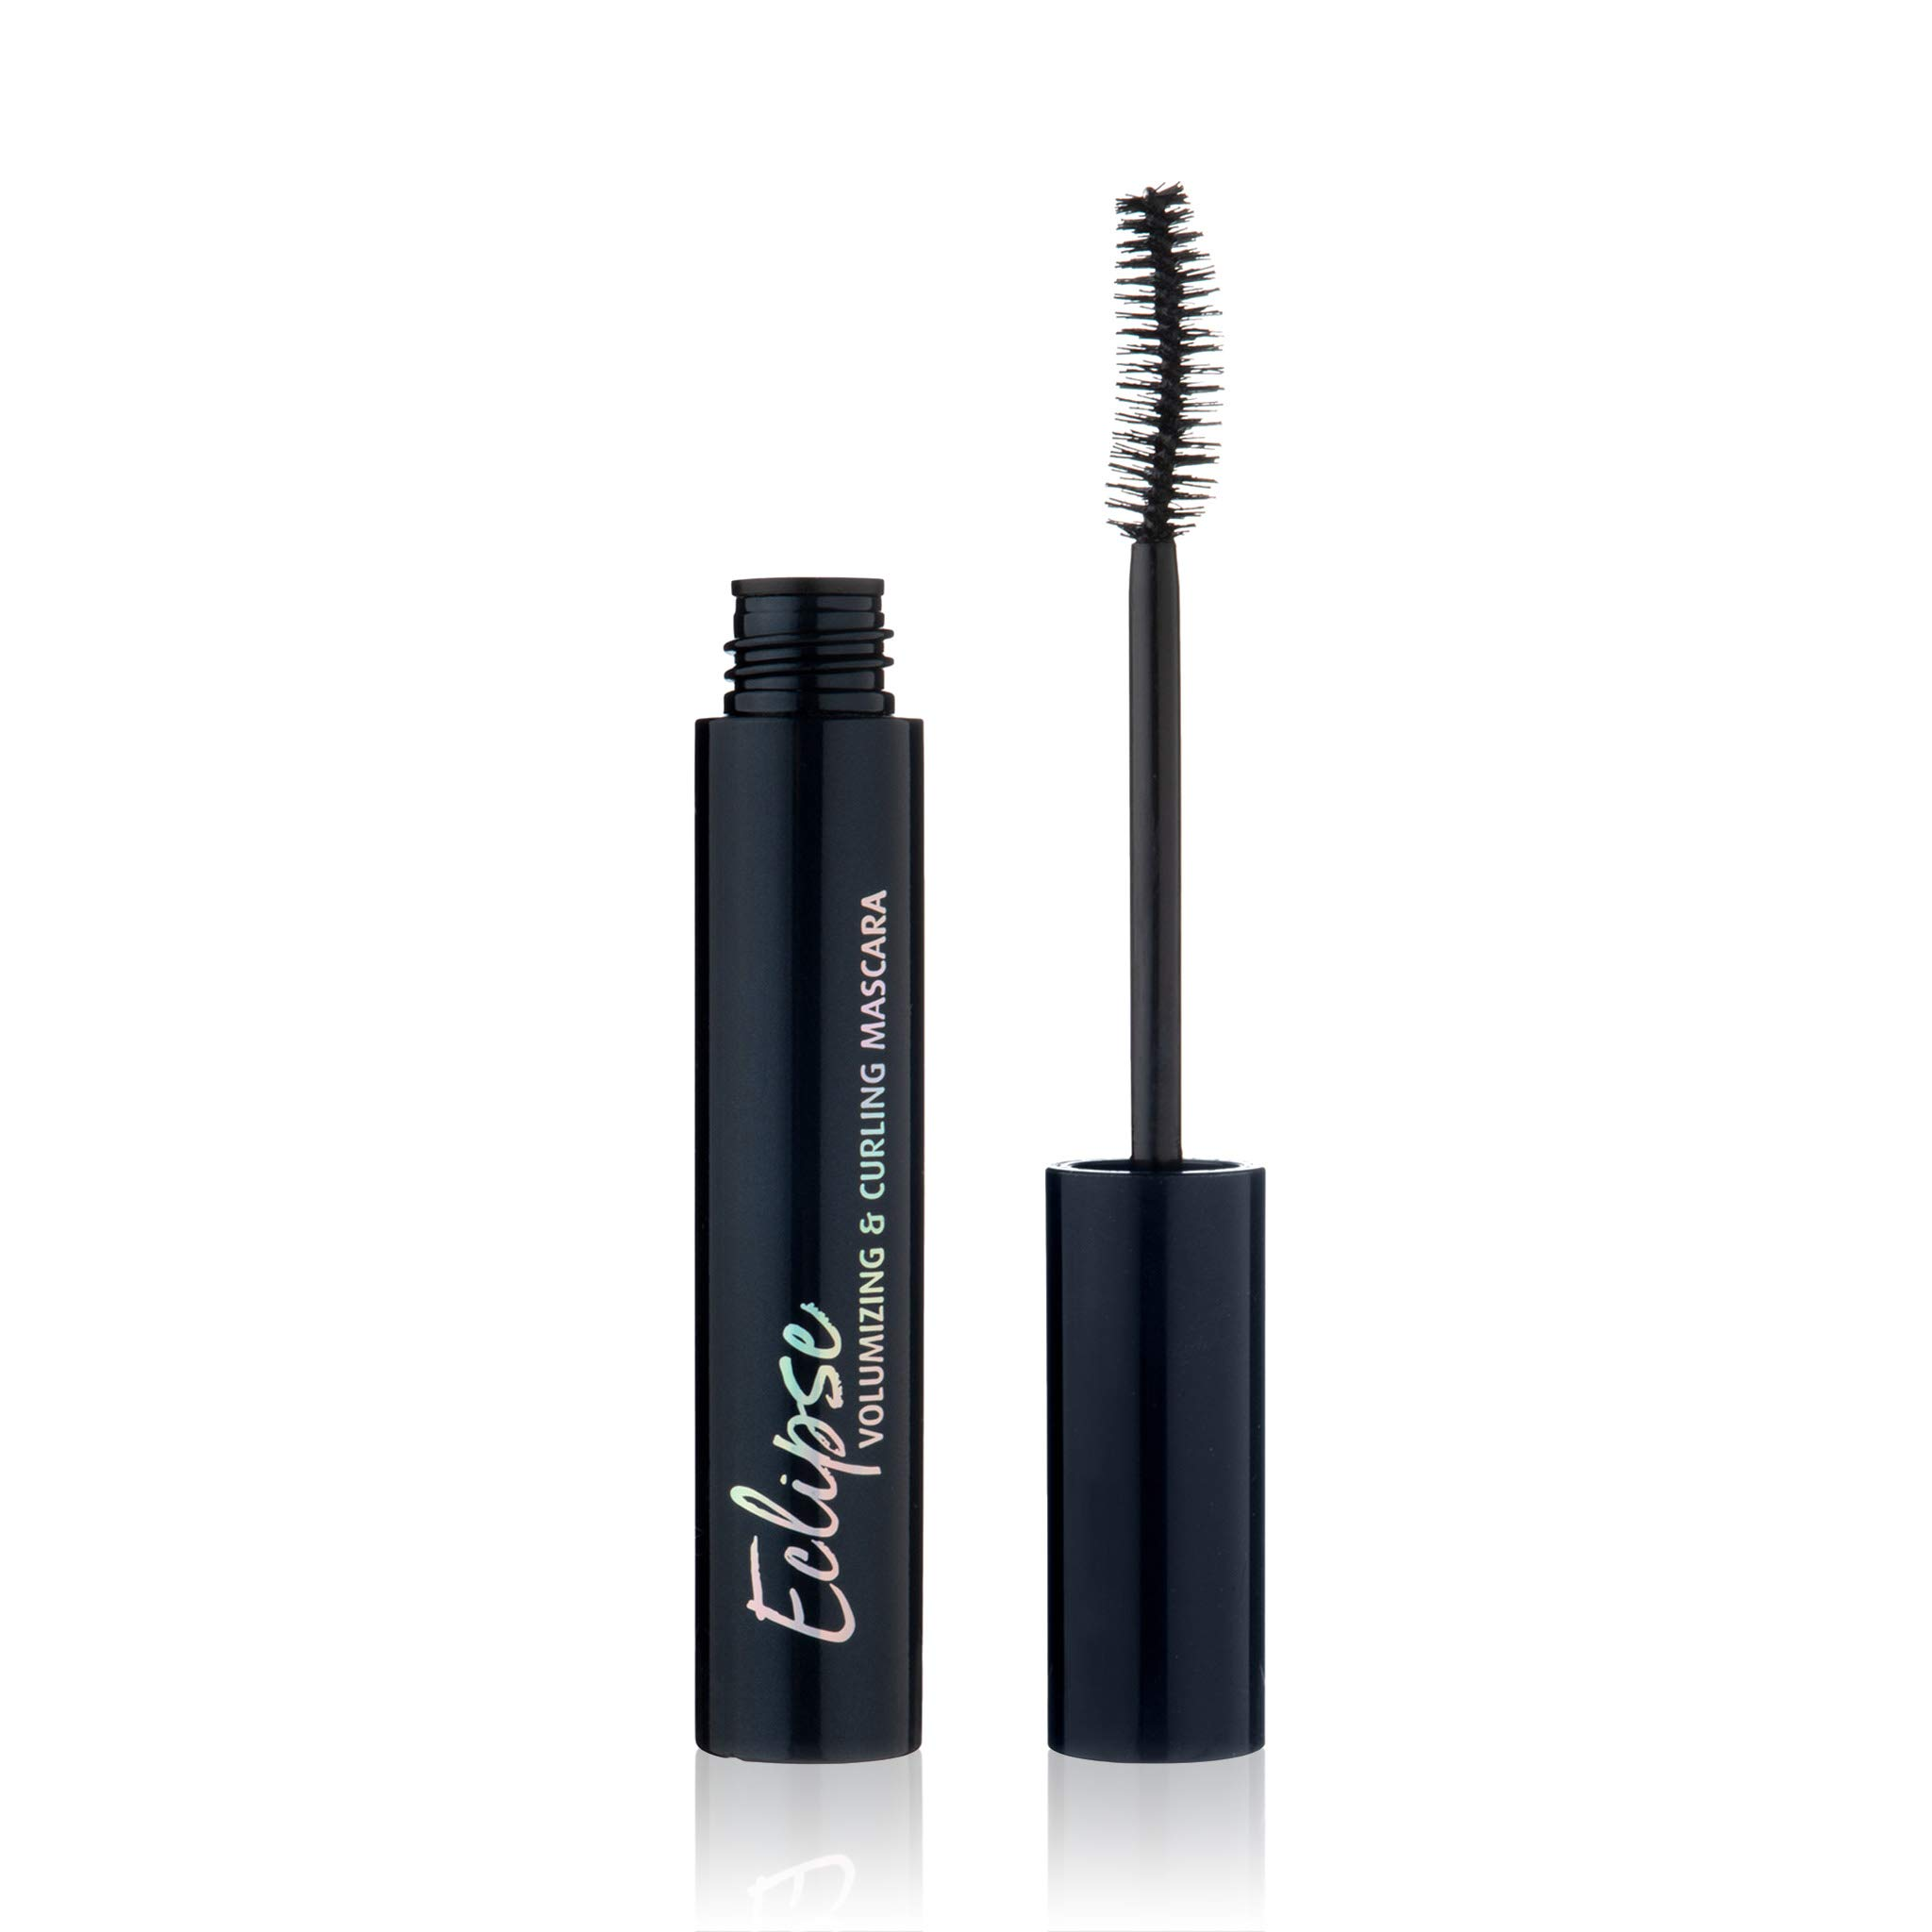 Lune+Aster Eclipse Volumizing & Curling Mascara - Volumizing & curling vegan tubular mascara that won't smudge, yet removes easily with warm water